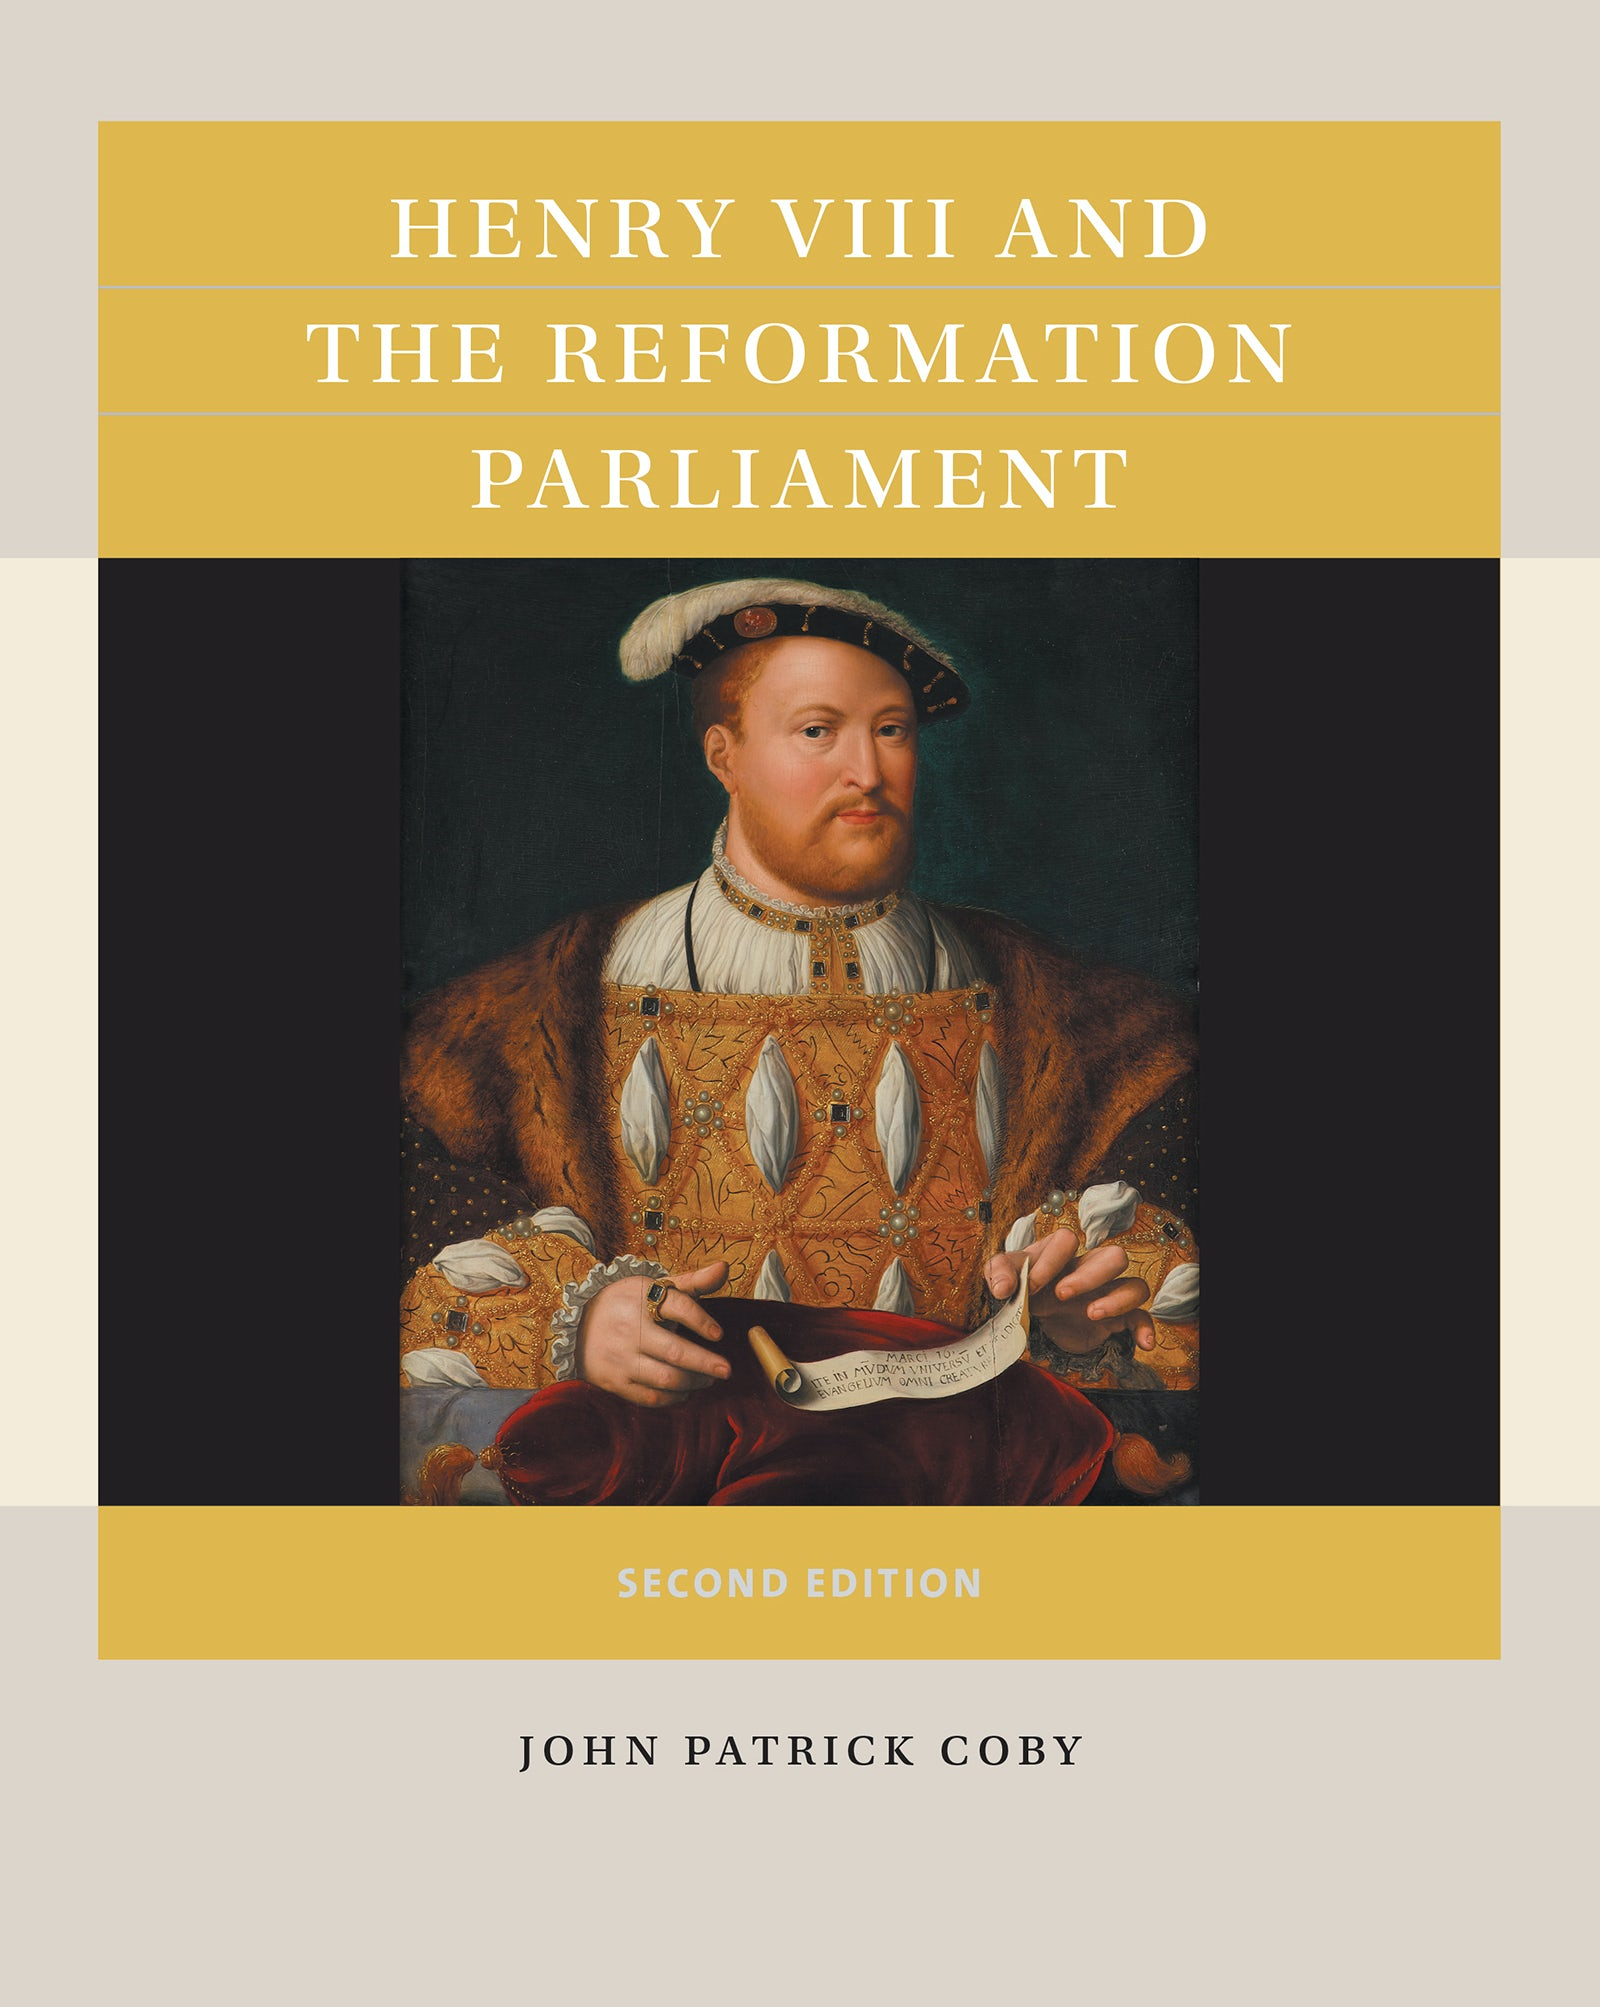 Machiavellian Statecraft and the English Reformation Thomas Cromwell